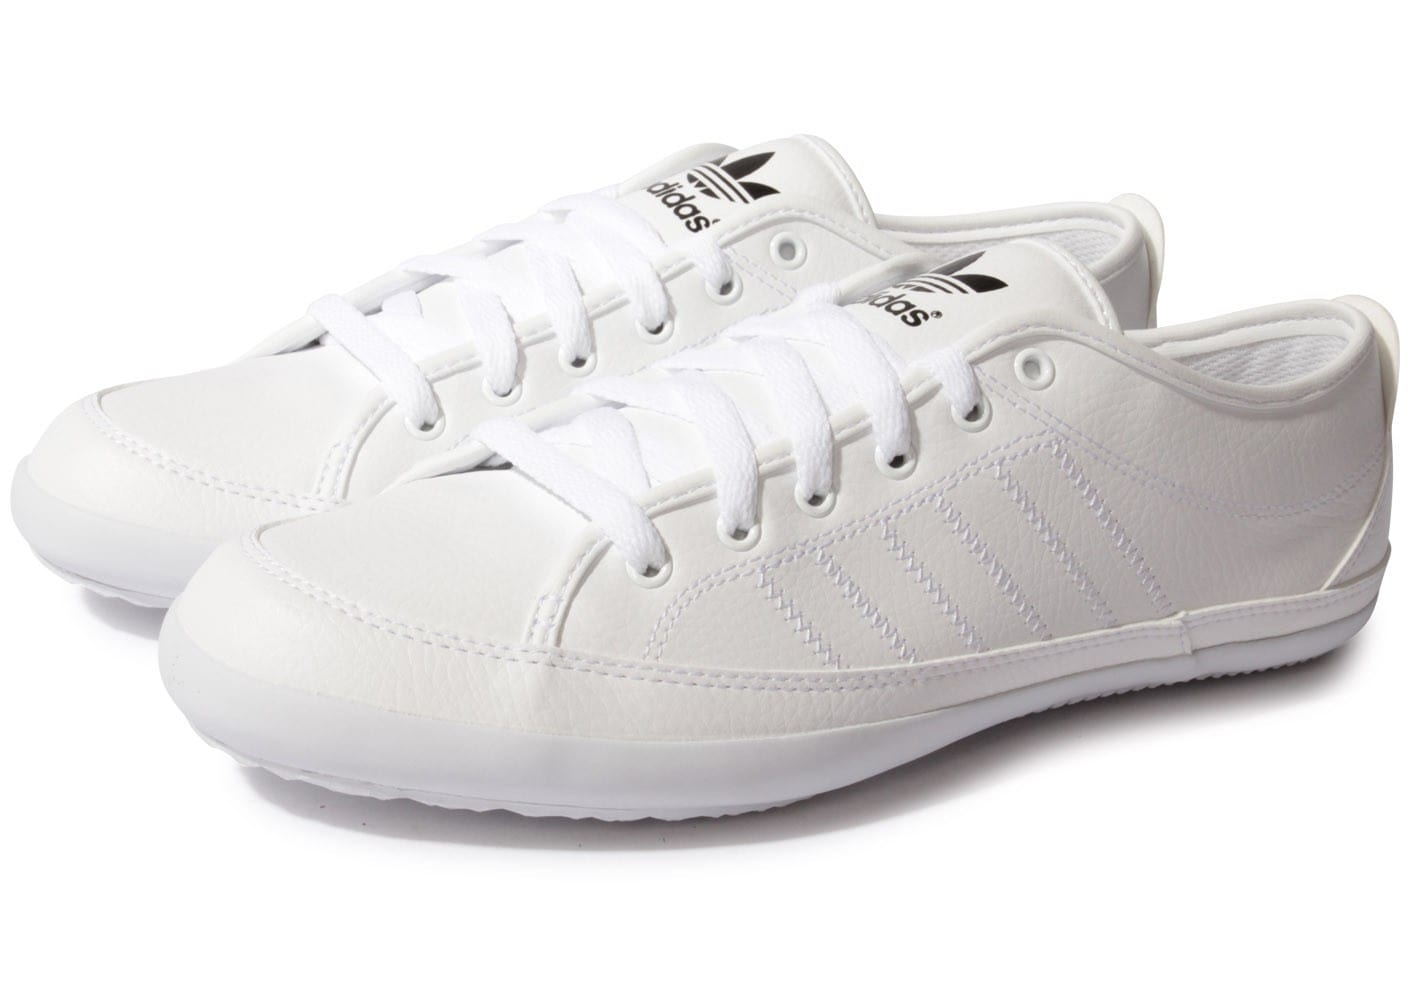 adidas Nizza Remodel Blanche - Chaussures Baskets homme ...